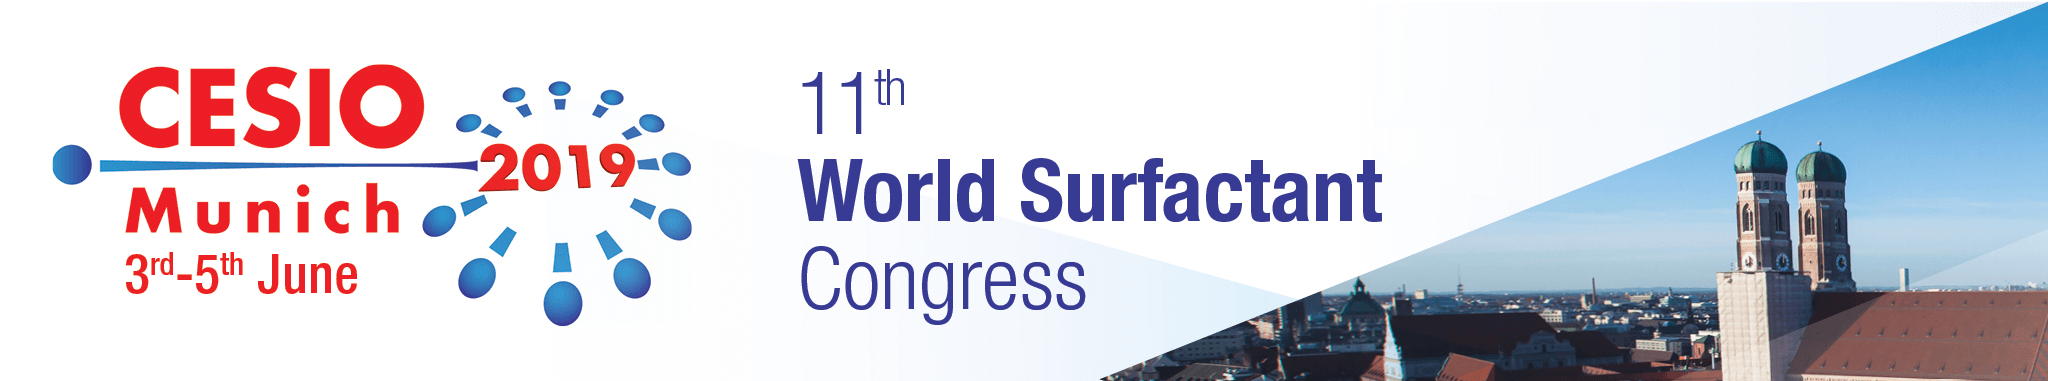 11th World Surfactant Congress - Infinity Hotel & Conference Resort - Munich - Monday 3  › Wednesday 5 June 2019